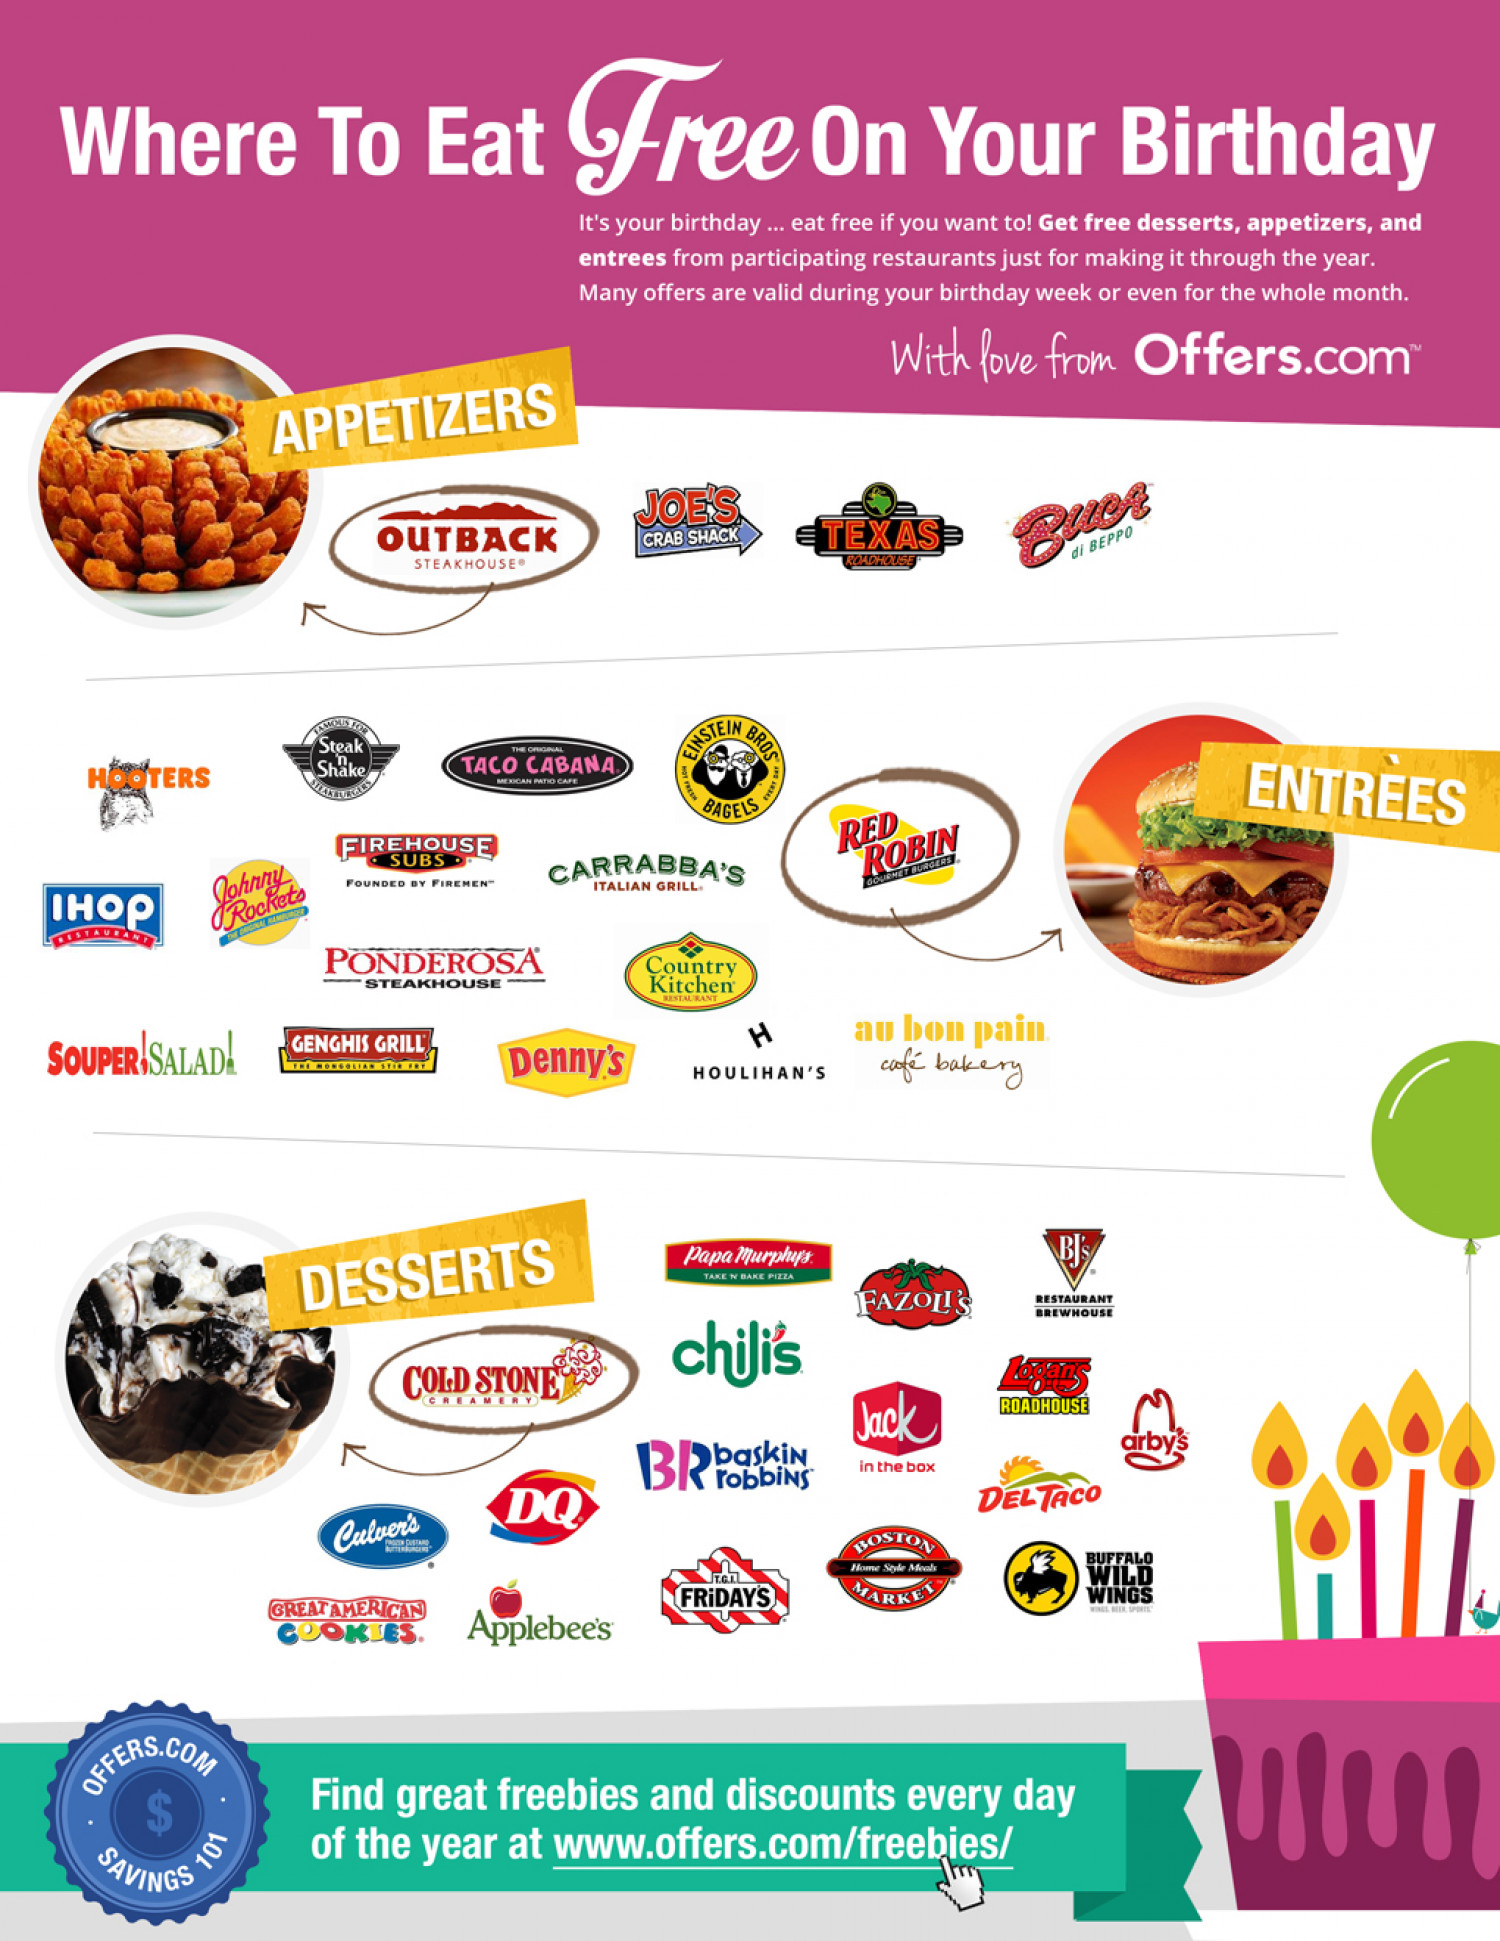 Where To Eat Free On Your Birthday Infographic